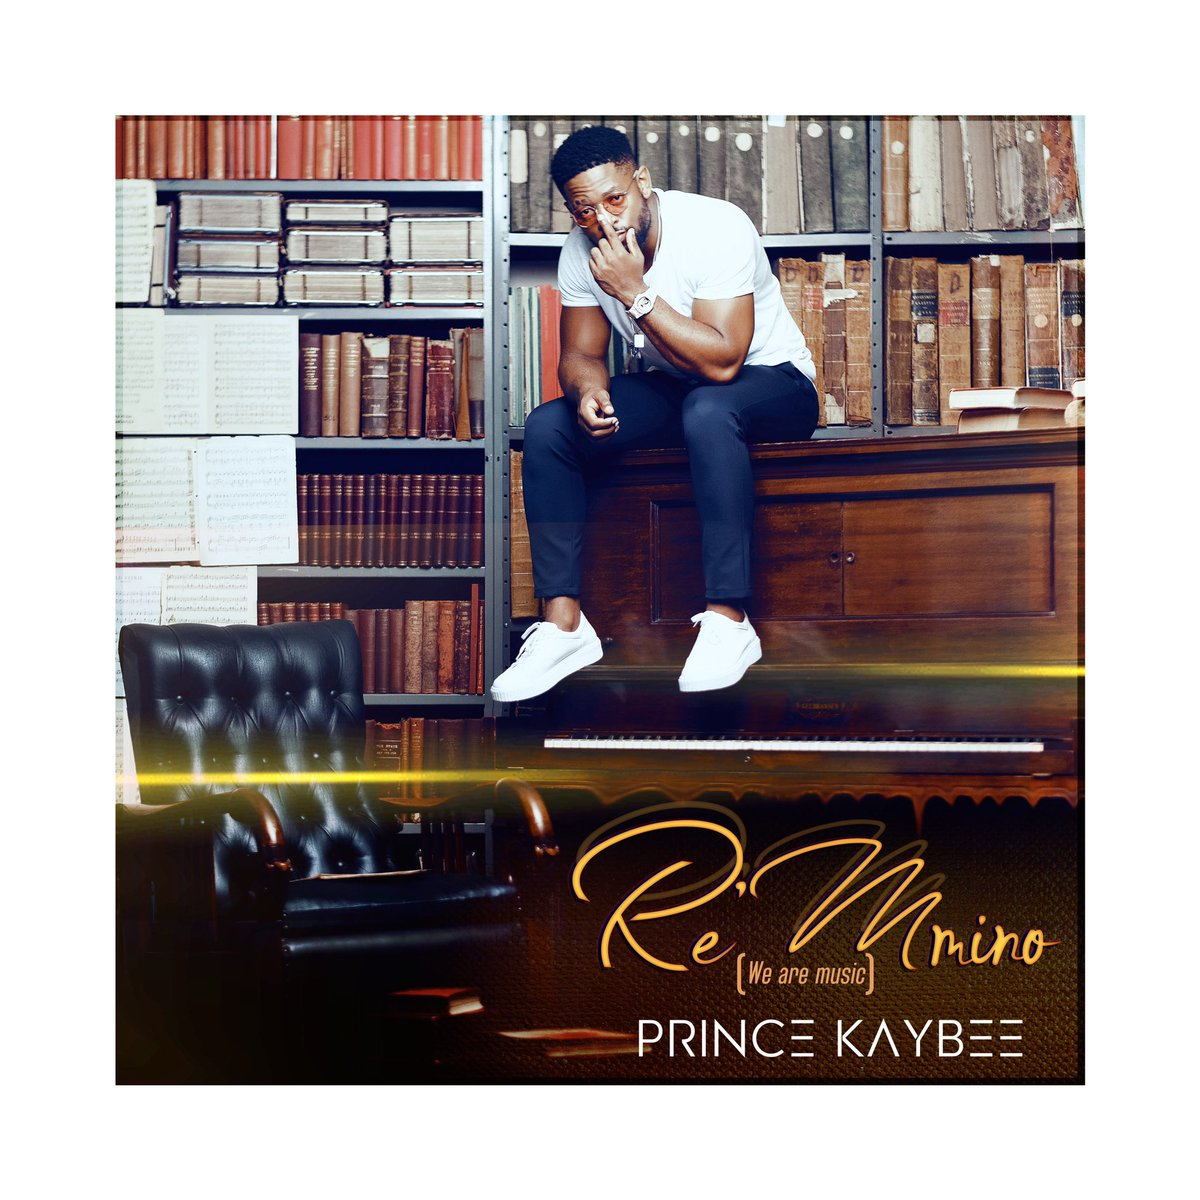 Pre-order Prince Kaybee's new album, Re Mmino